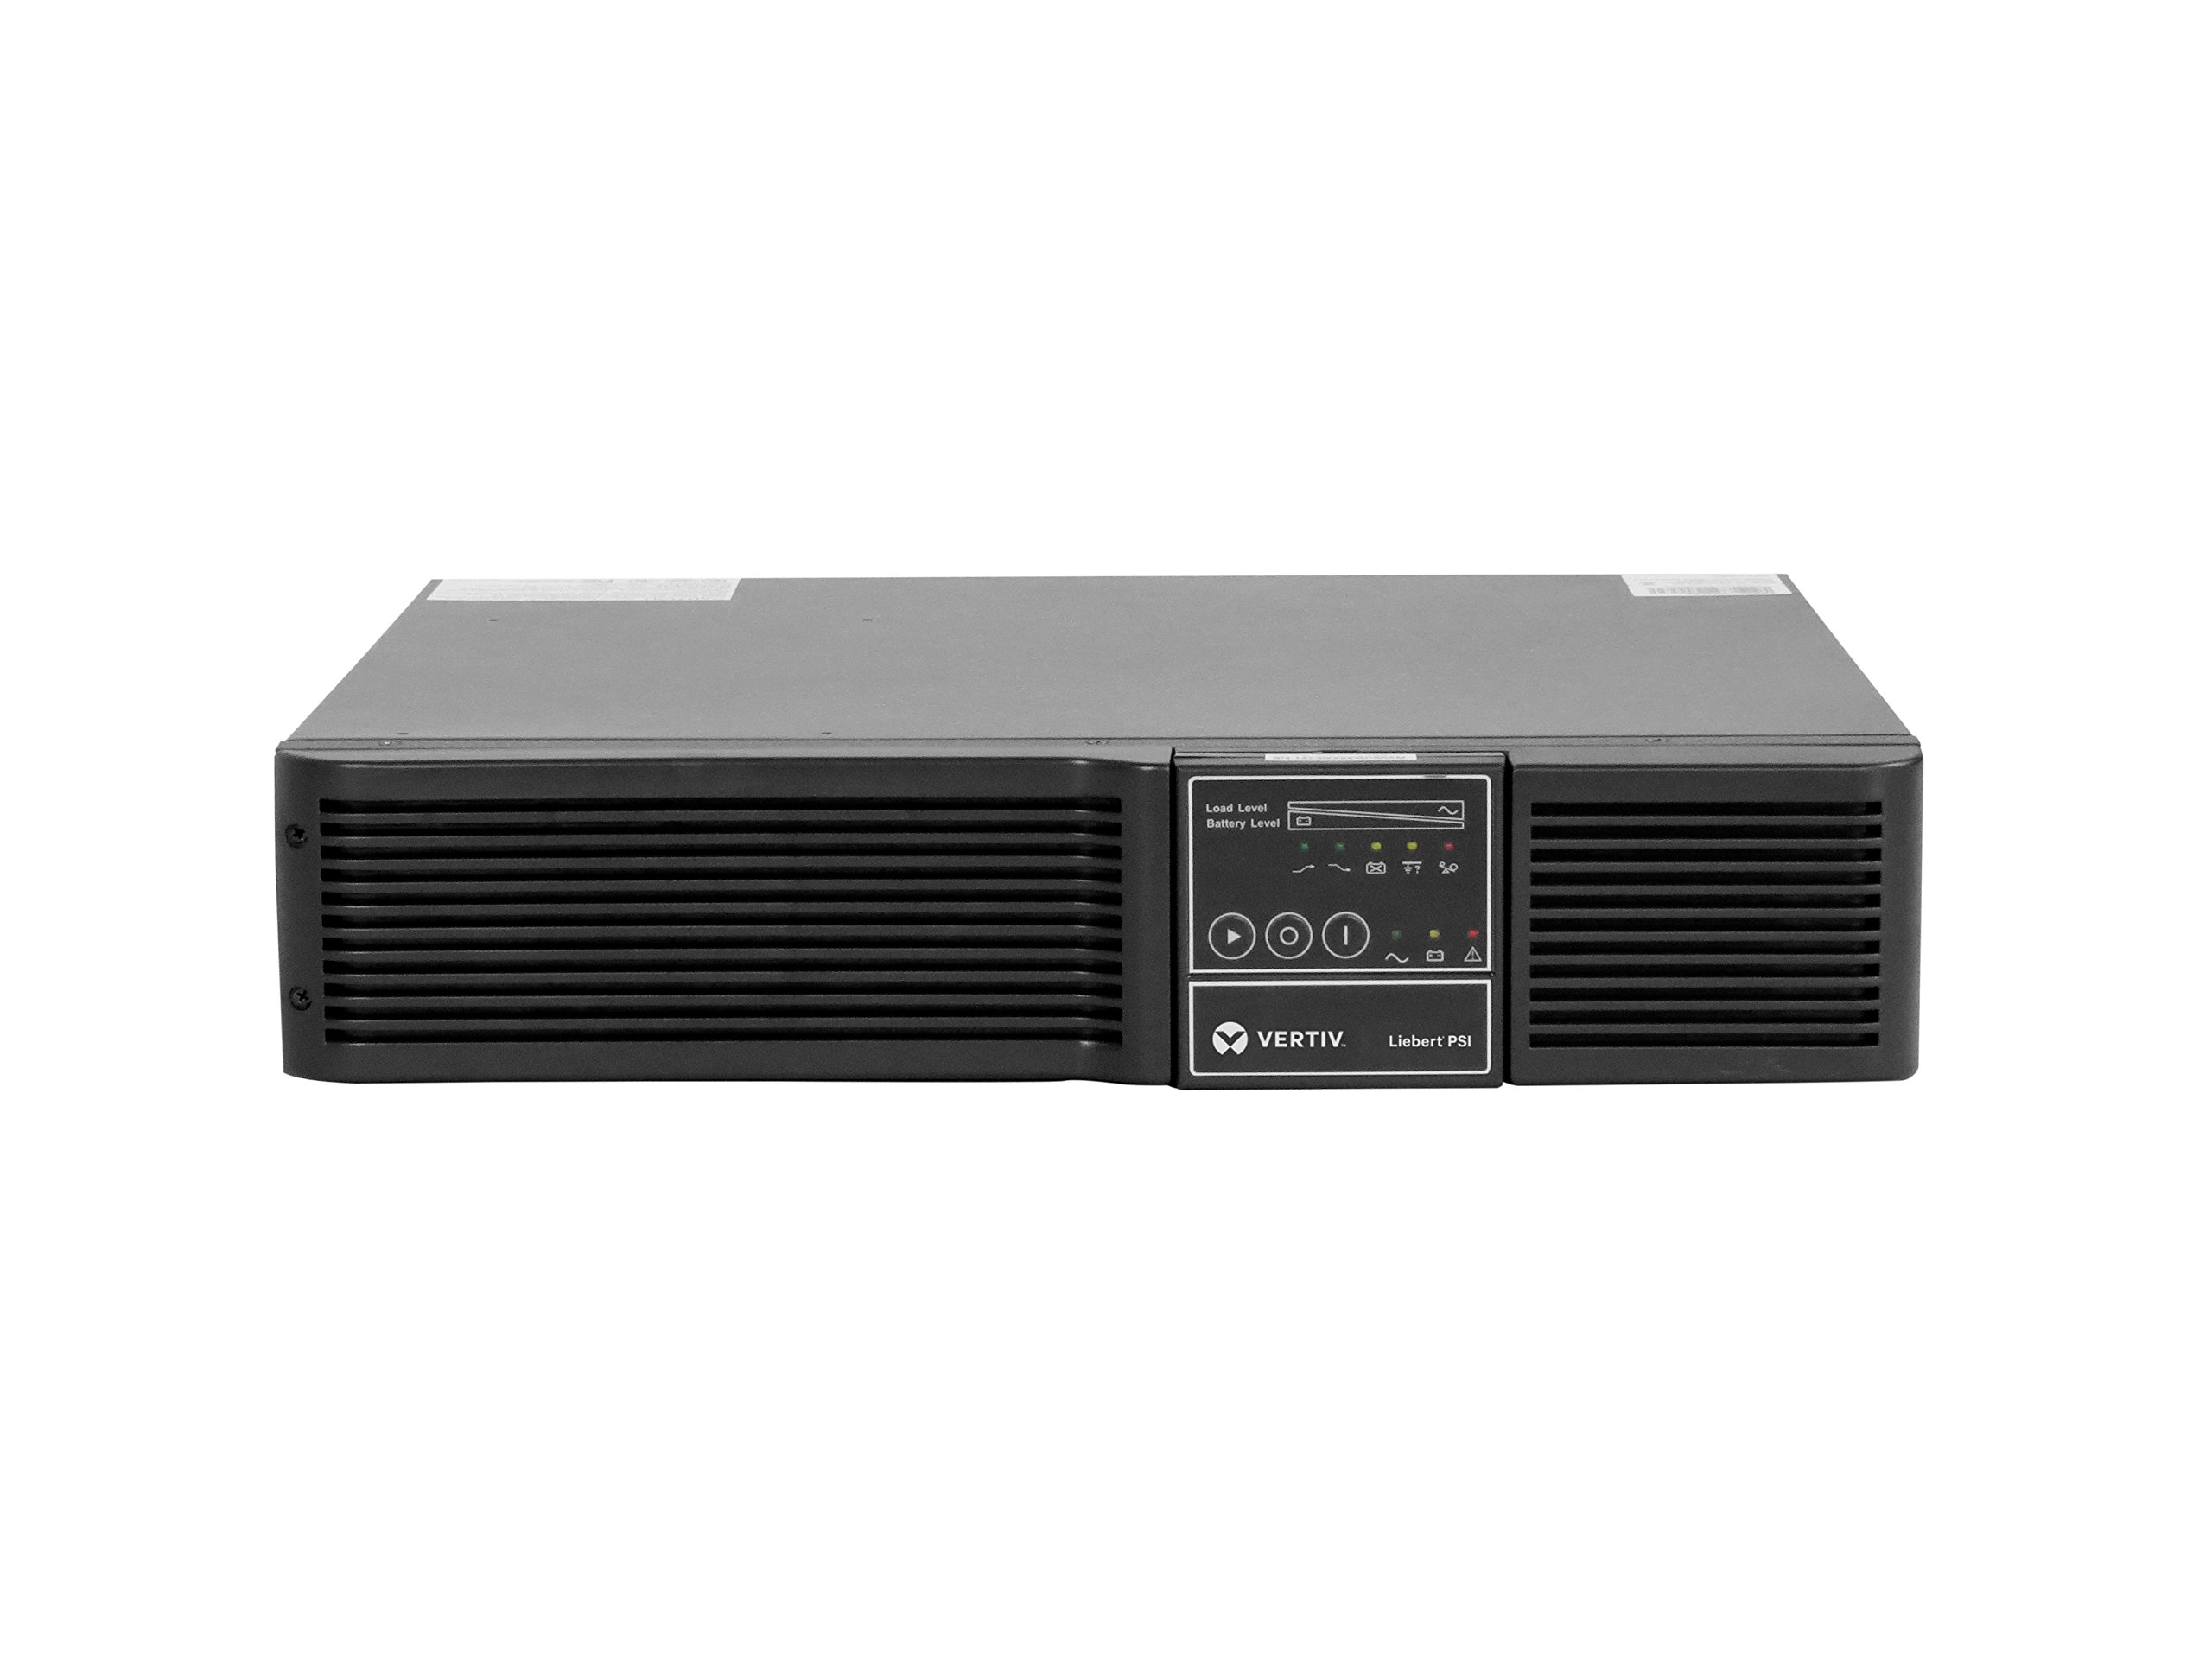 Liebert 1500VA 1350W 120V Advanced AVR Line-Interactive UPS with Extended Runtime, IS-WEBRT3 Card, Pure Sine Wave, SNMP/HTTP Enabled, 2U Rackmount/Tower, Supports Active PFC (PS1500RT3120XRW)